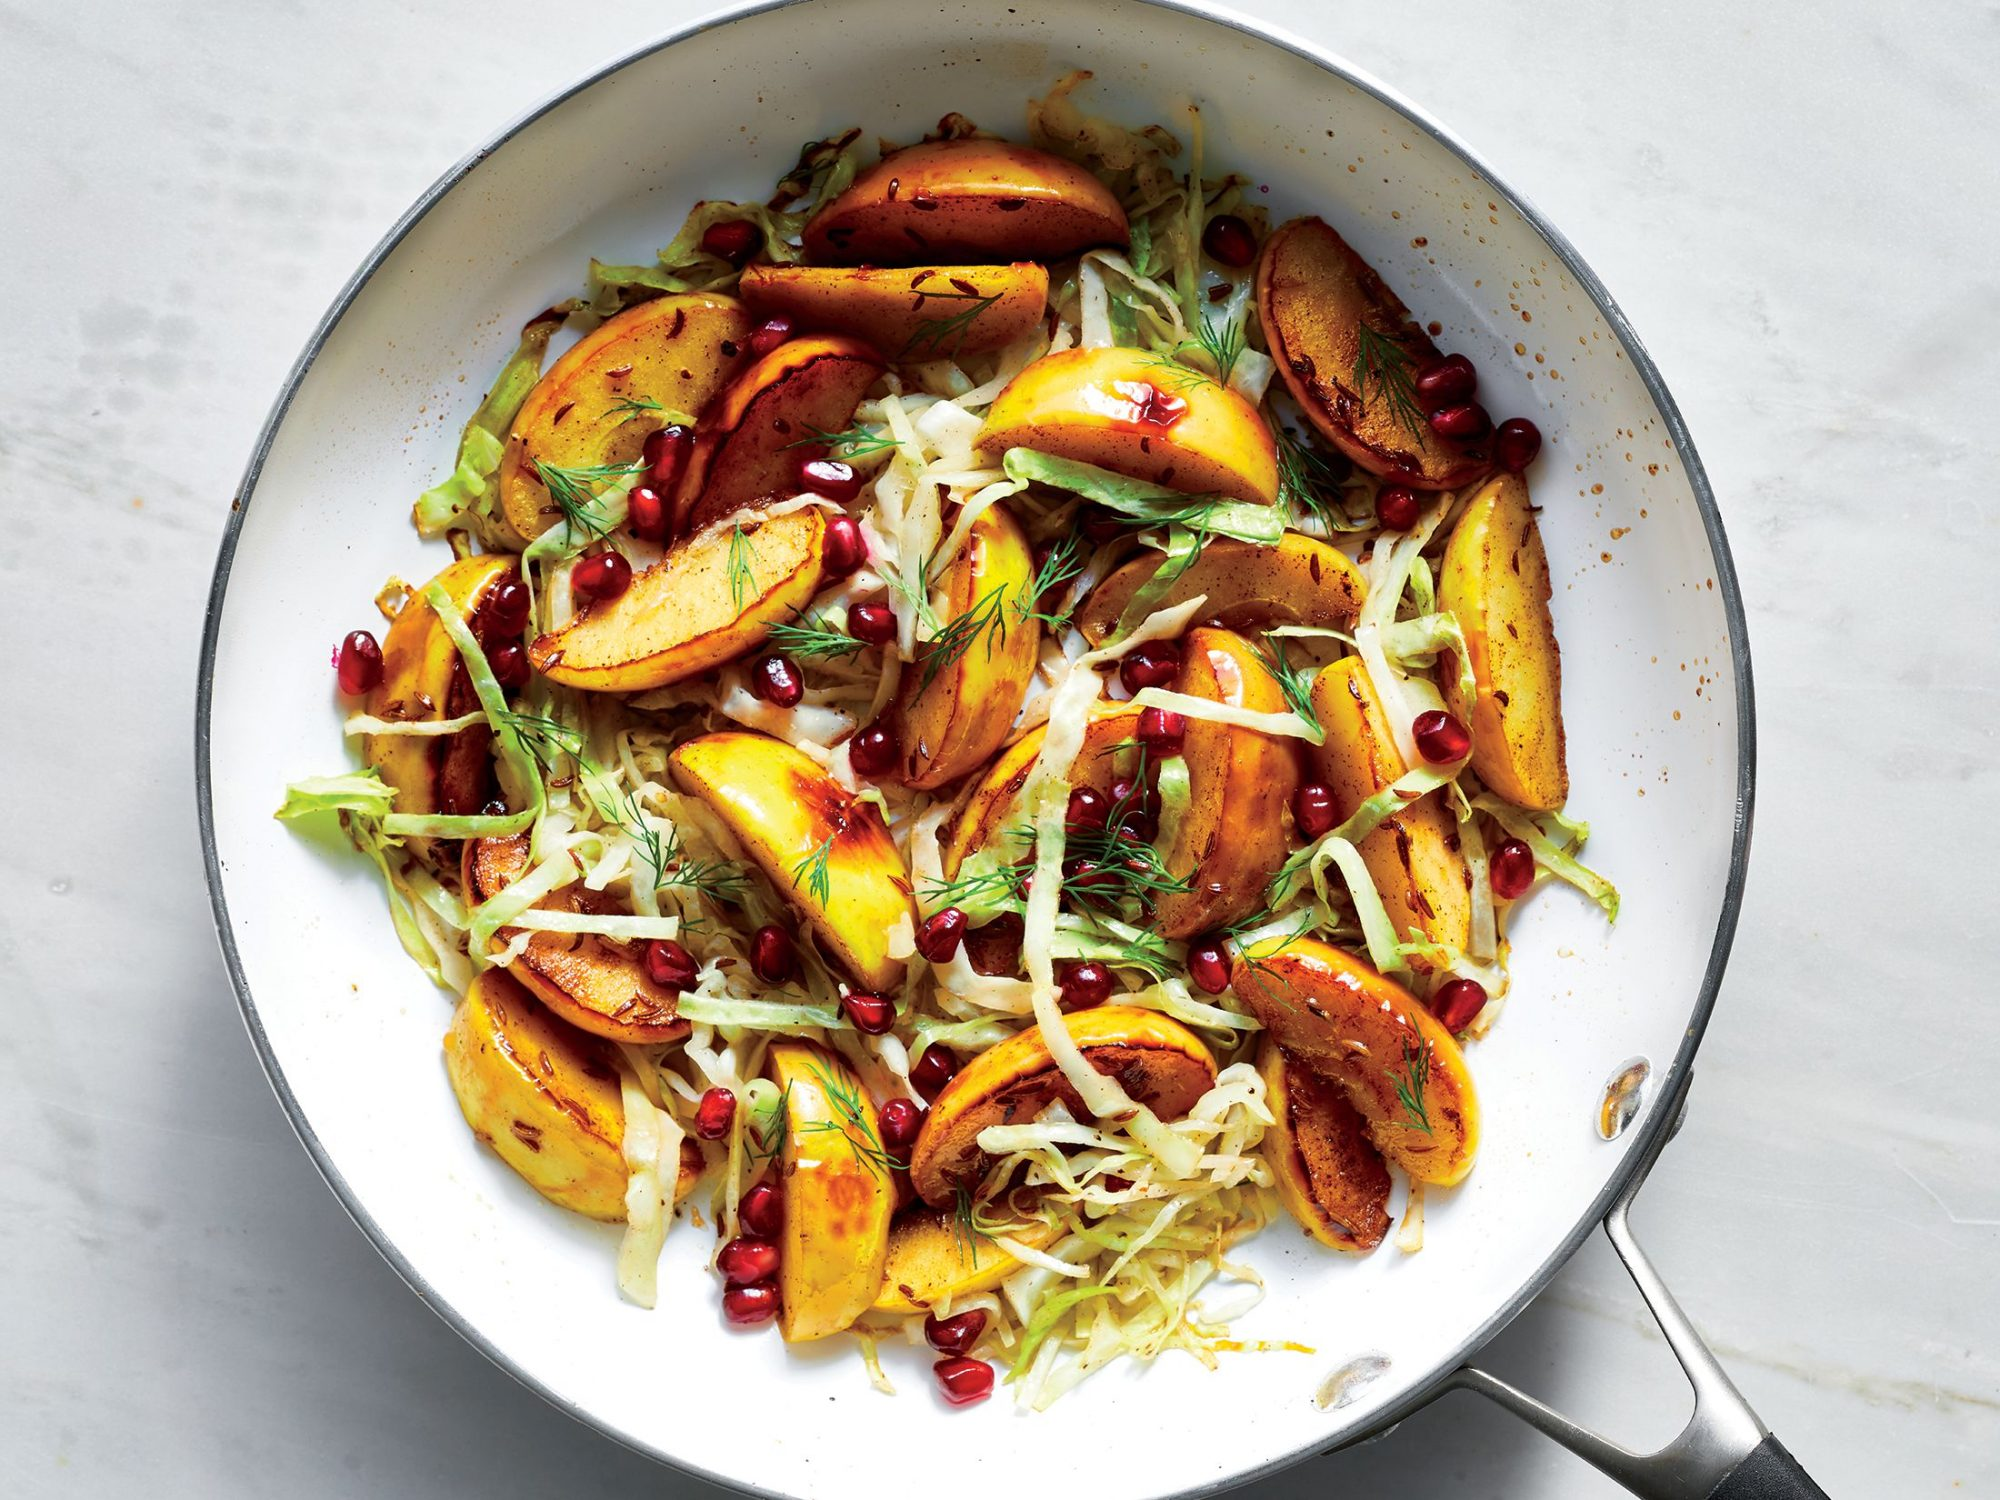 Spiced Apples and Cabbage